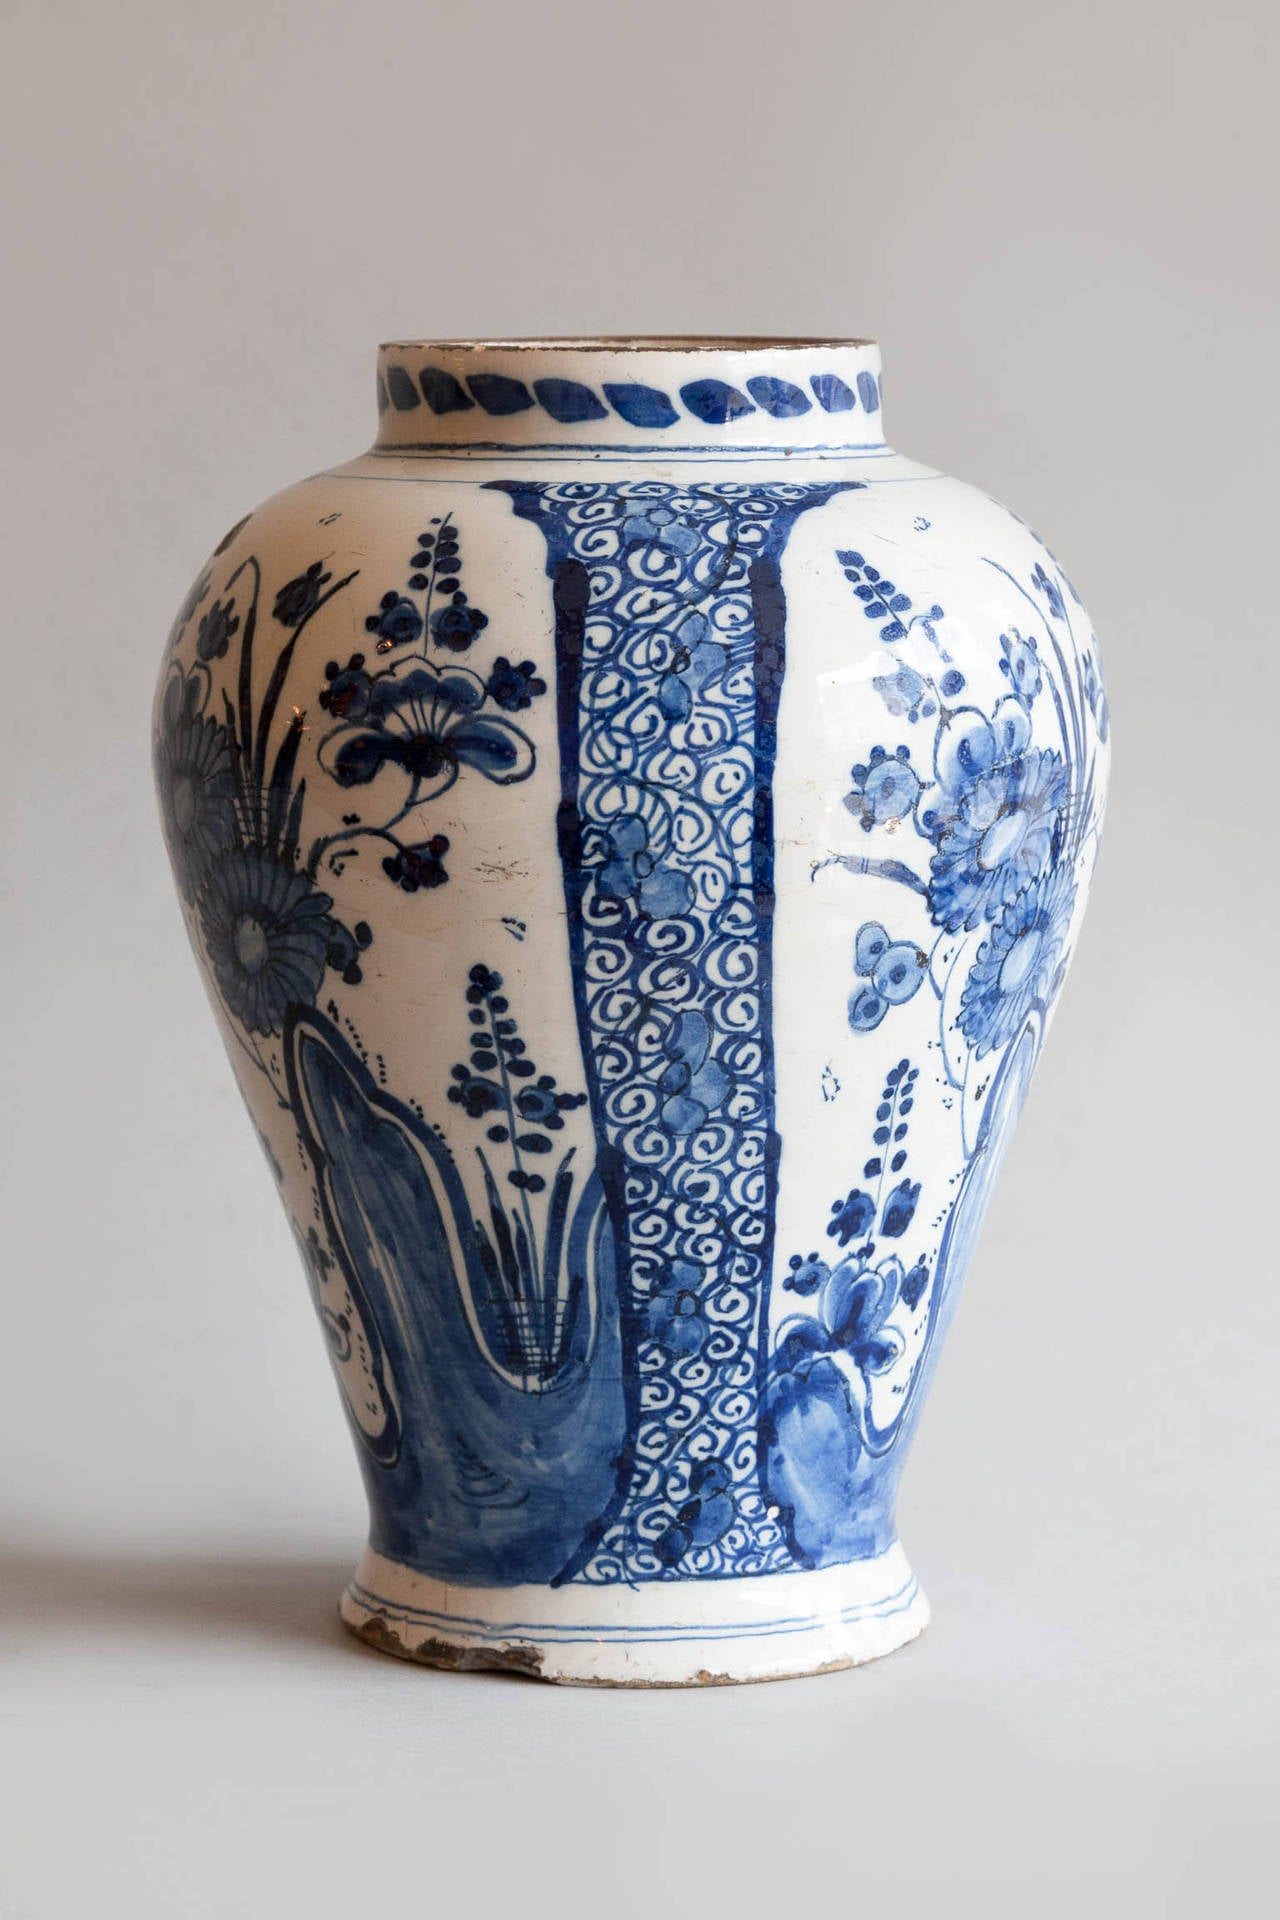 18th century faence baluster delft vase at 1stdibs louis xvi 18th century faence baluster delft vase for sale reviewsmspy